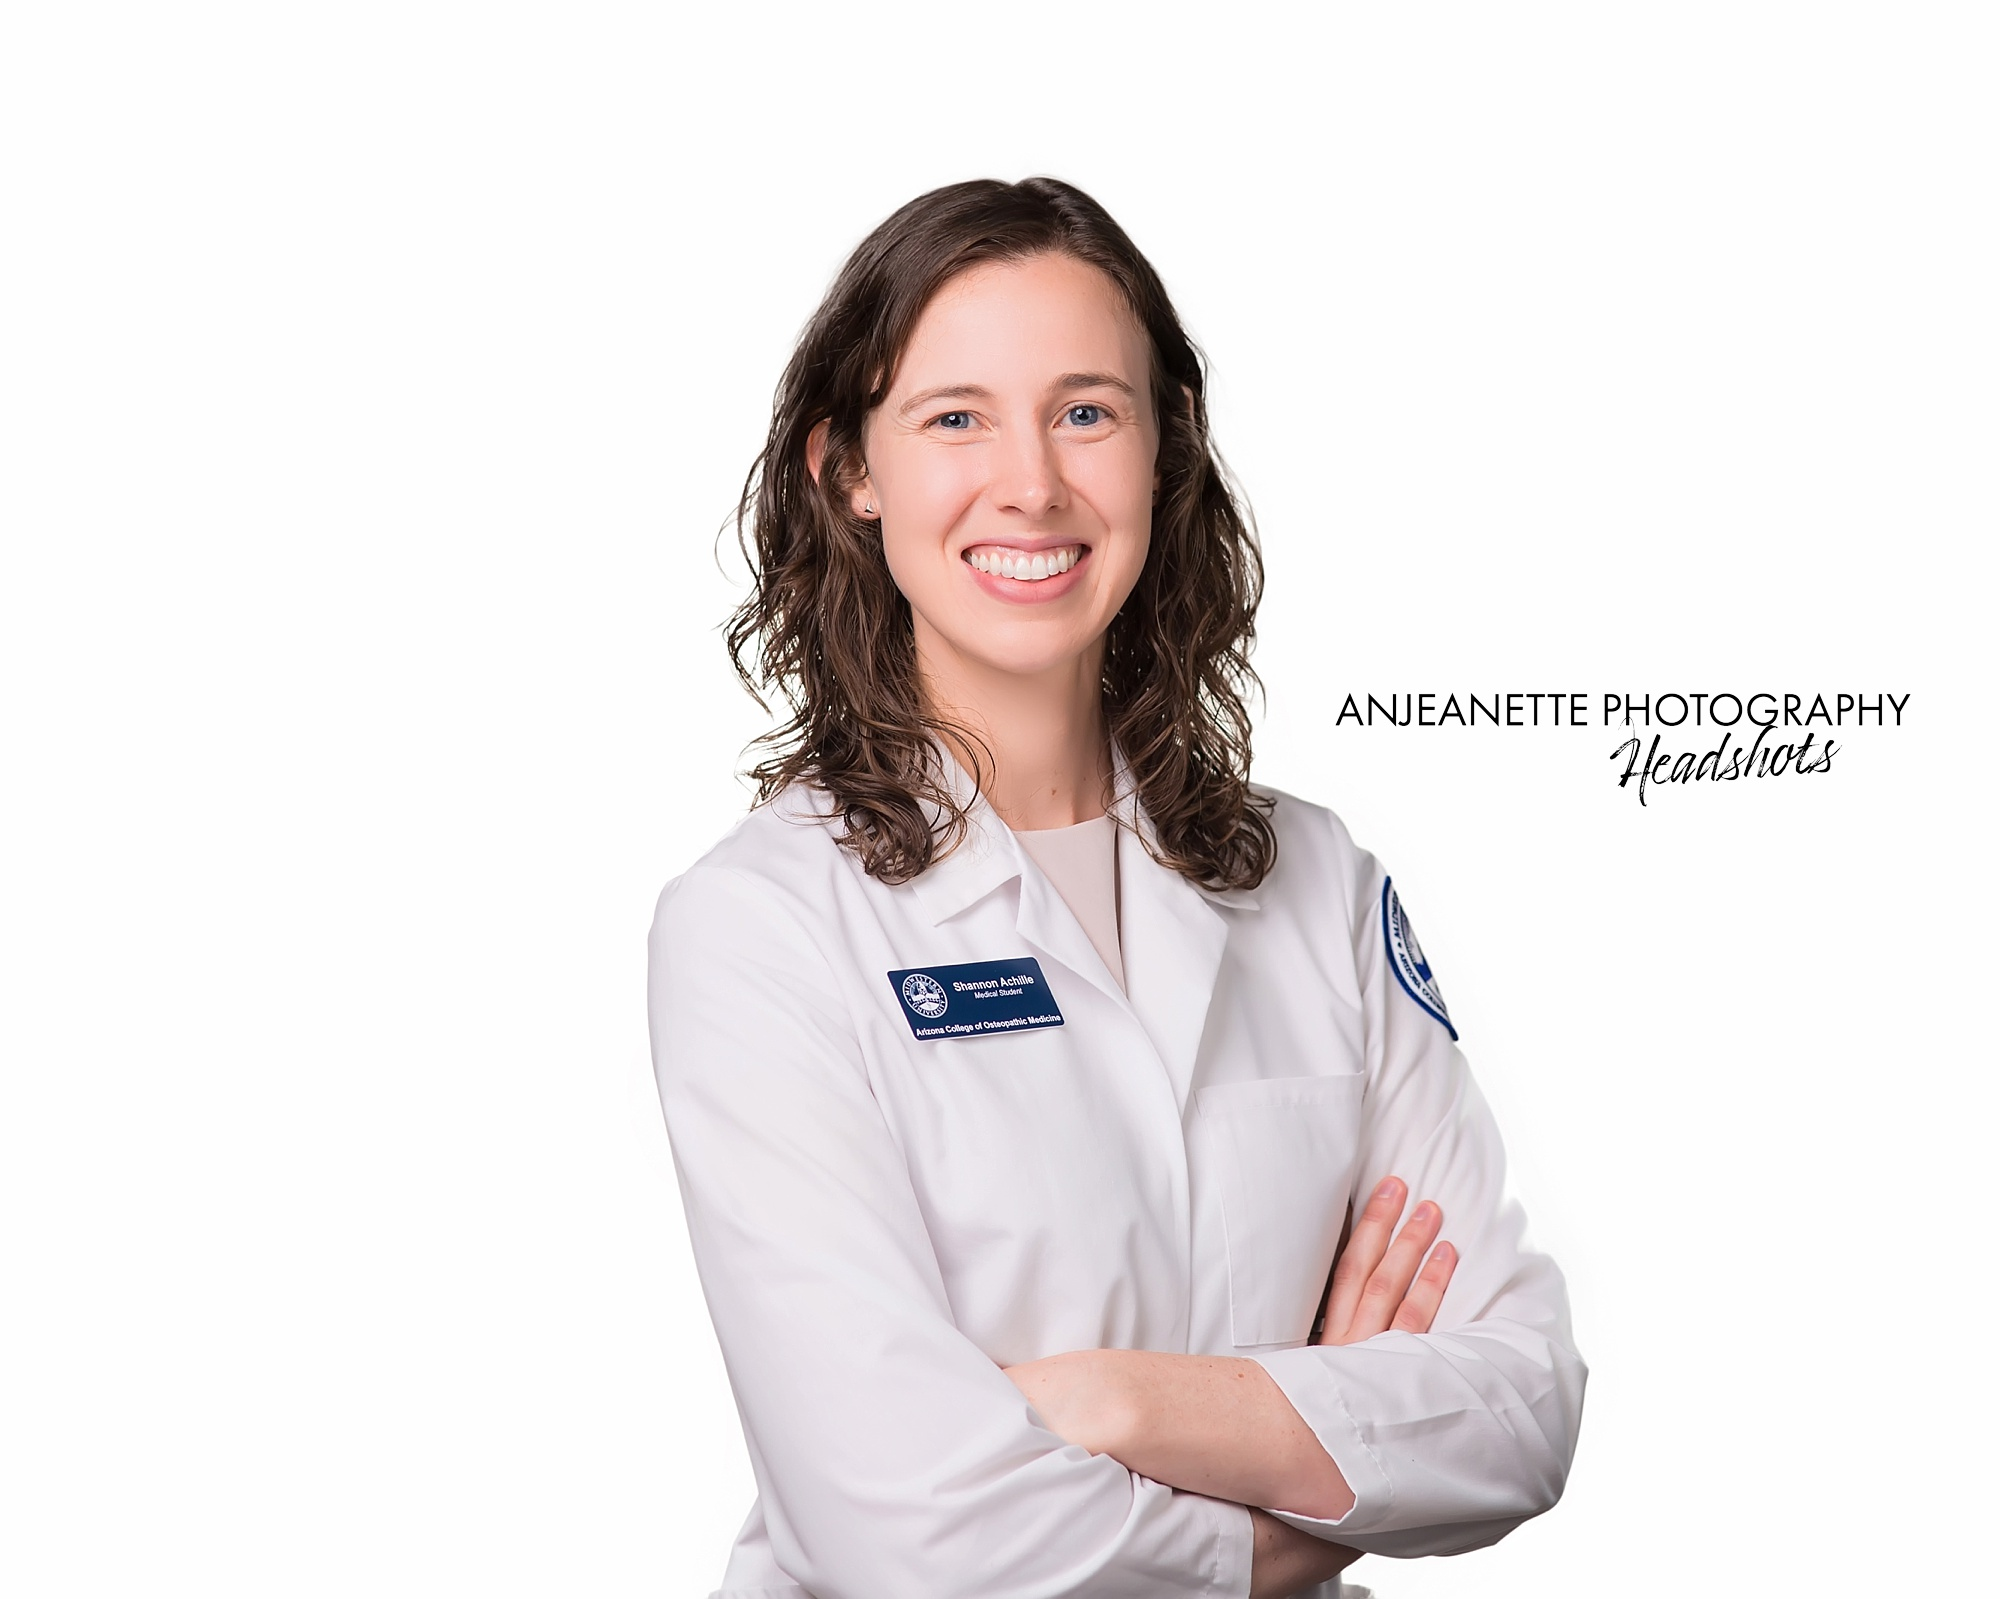 best headshots phoenix doctor medical student midwestern university business portraits professional pictures arizona